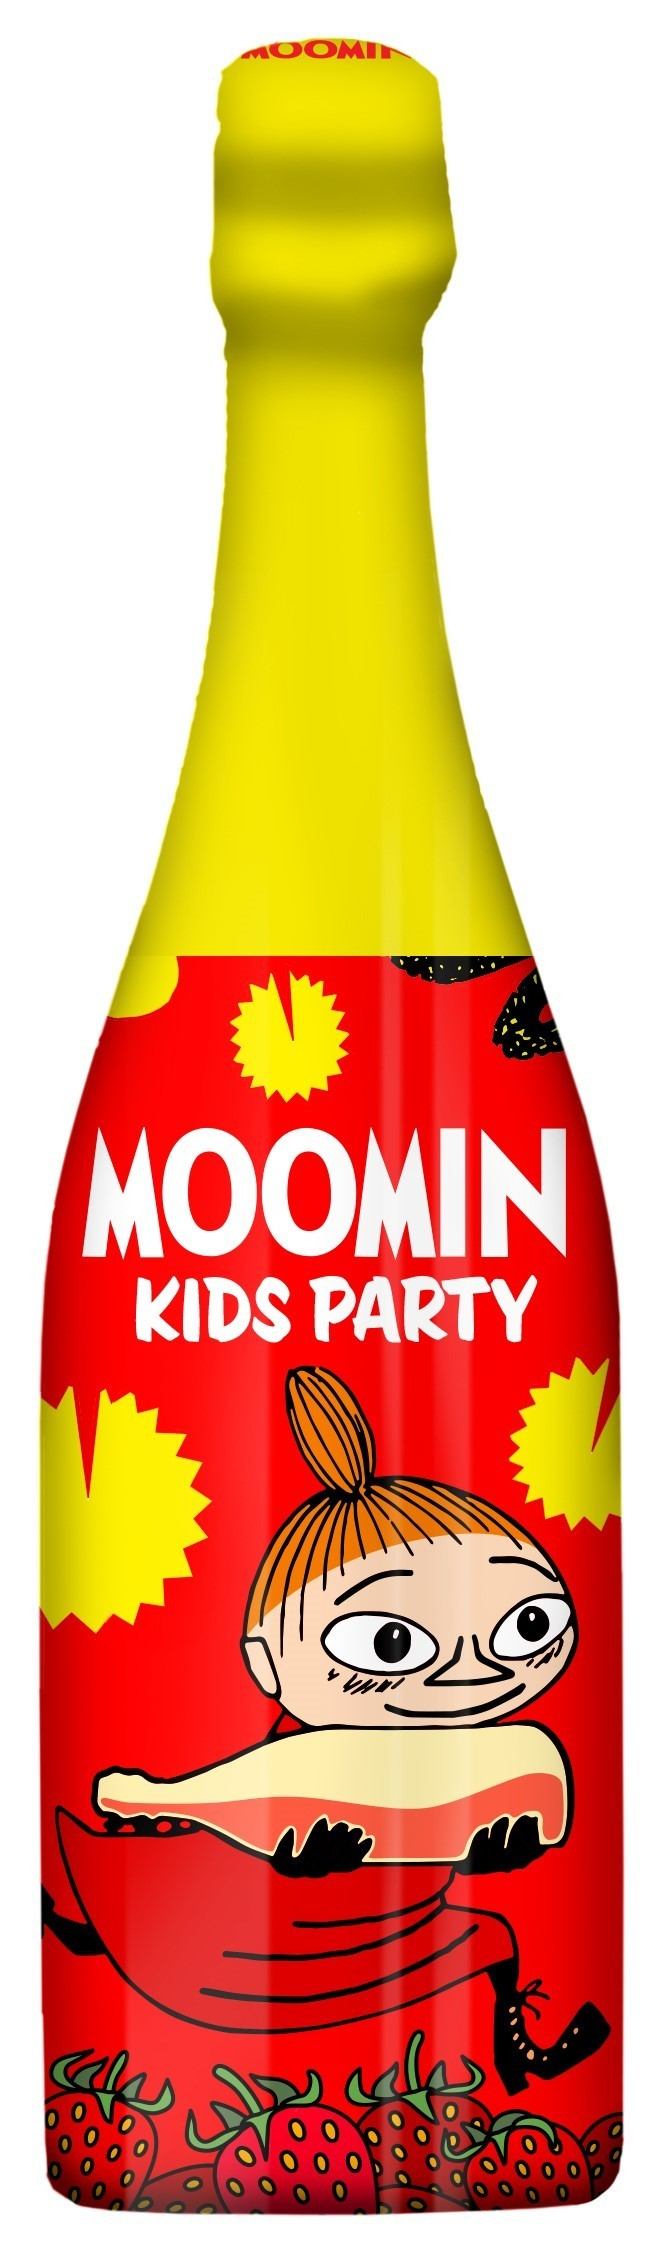 LASSO DRINKS Moomin Kids Party Drink Wild Strawberry 75cl